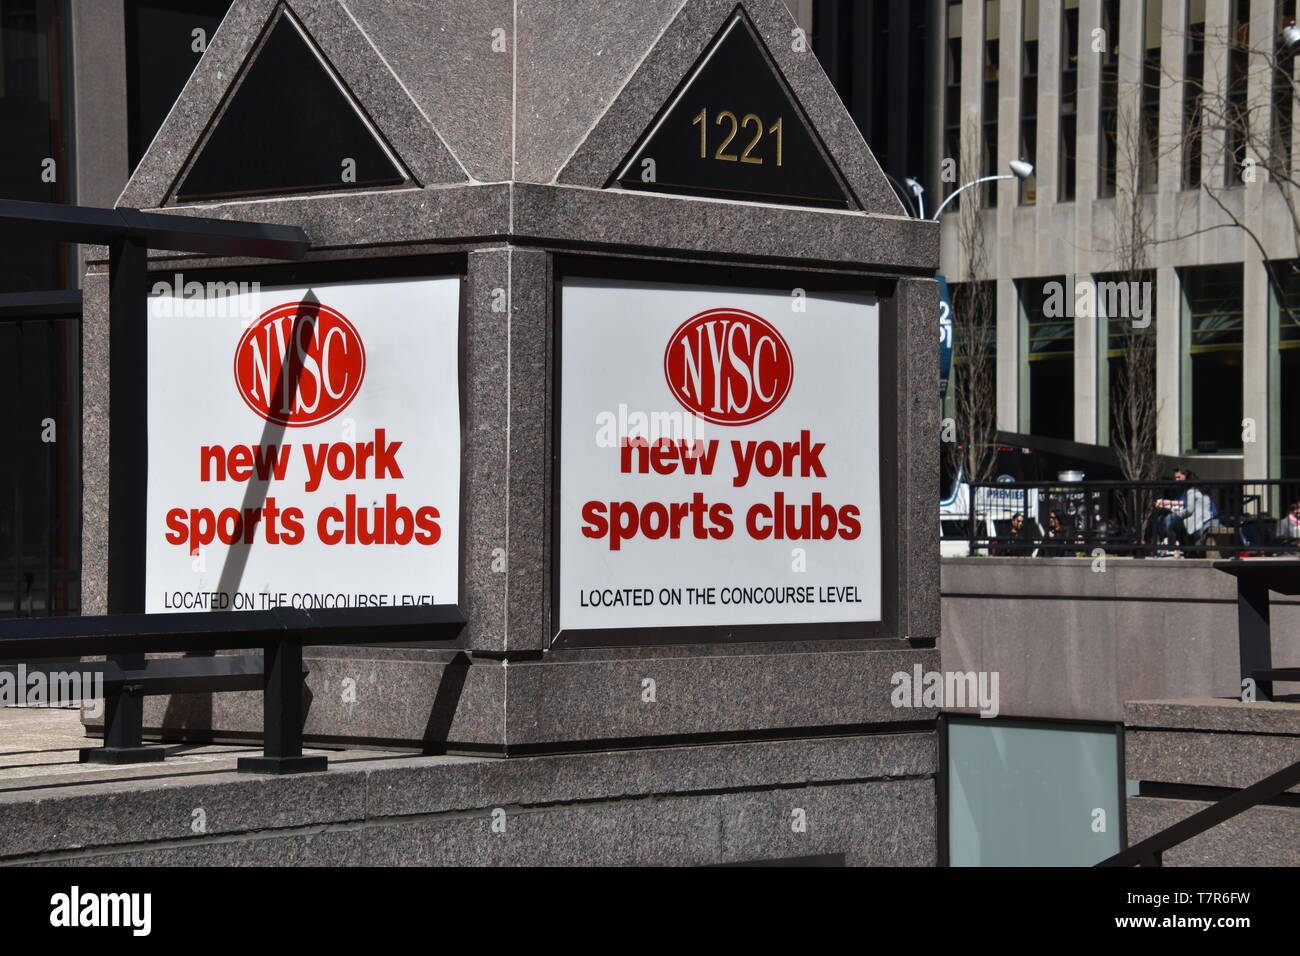 Y - April 3, 2019: New York Sports Club Sign as seen in midtown Manhattan, New York City on this date - Stock Image